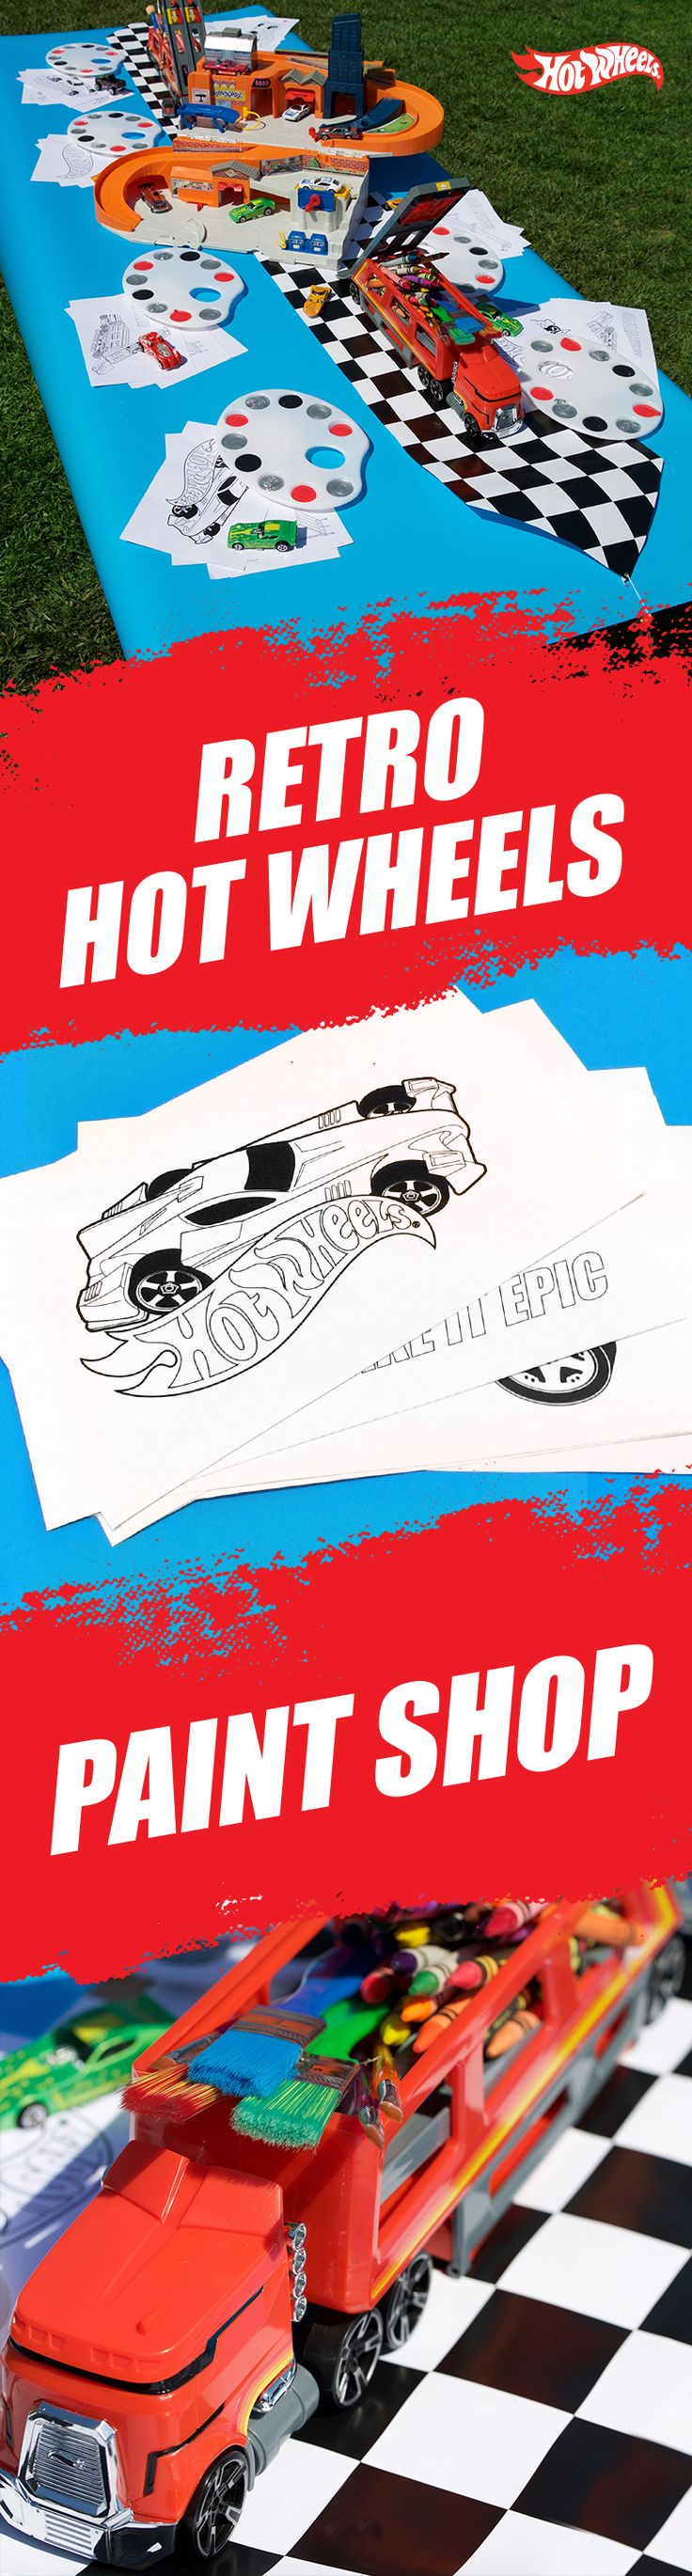 This epic DIY Hot Wheels activity table gives kids the green light to paint and color retro Hot Wheels printable coloring pages with their own unique style. Place art supplies in the Hot Wheels Car-Go Hauler and set up the Hot Wheels Sto and Go for extra inspiration. Find out what you'll need and download the activity pages here for your Hot Wheels house party.